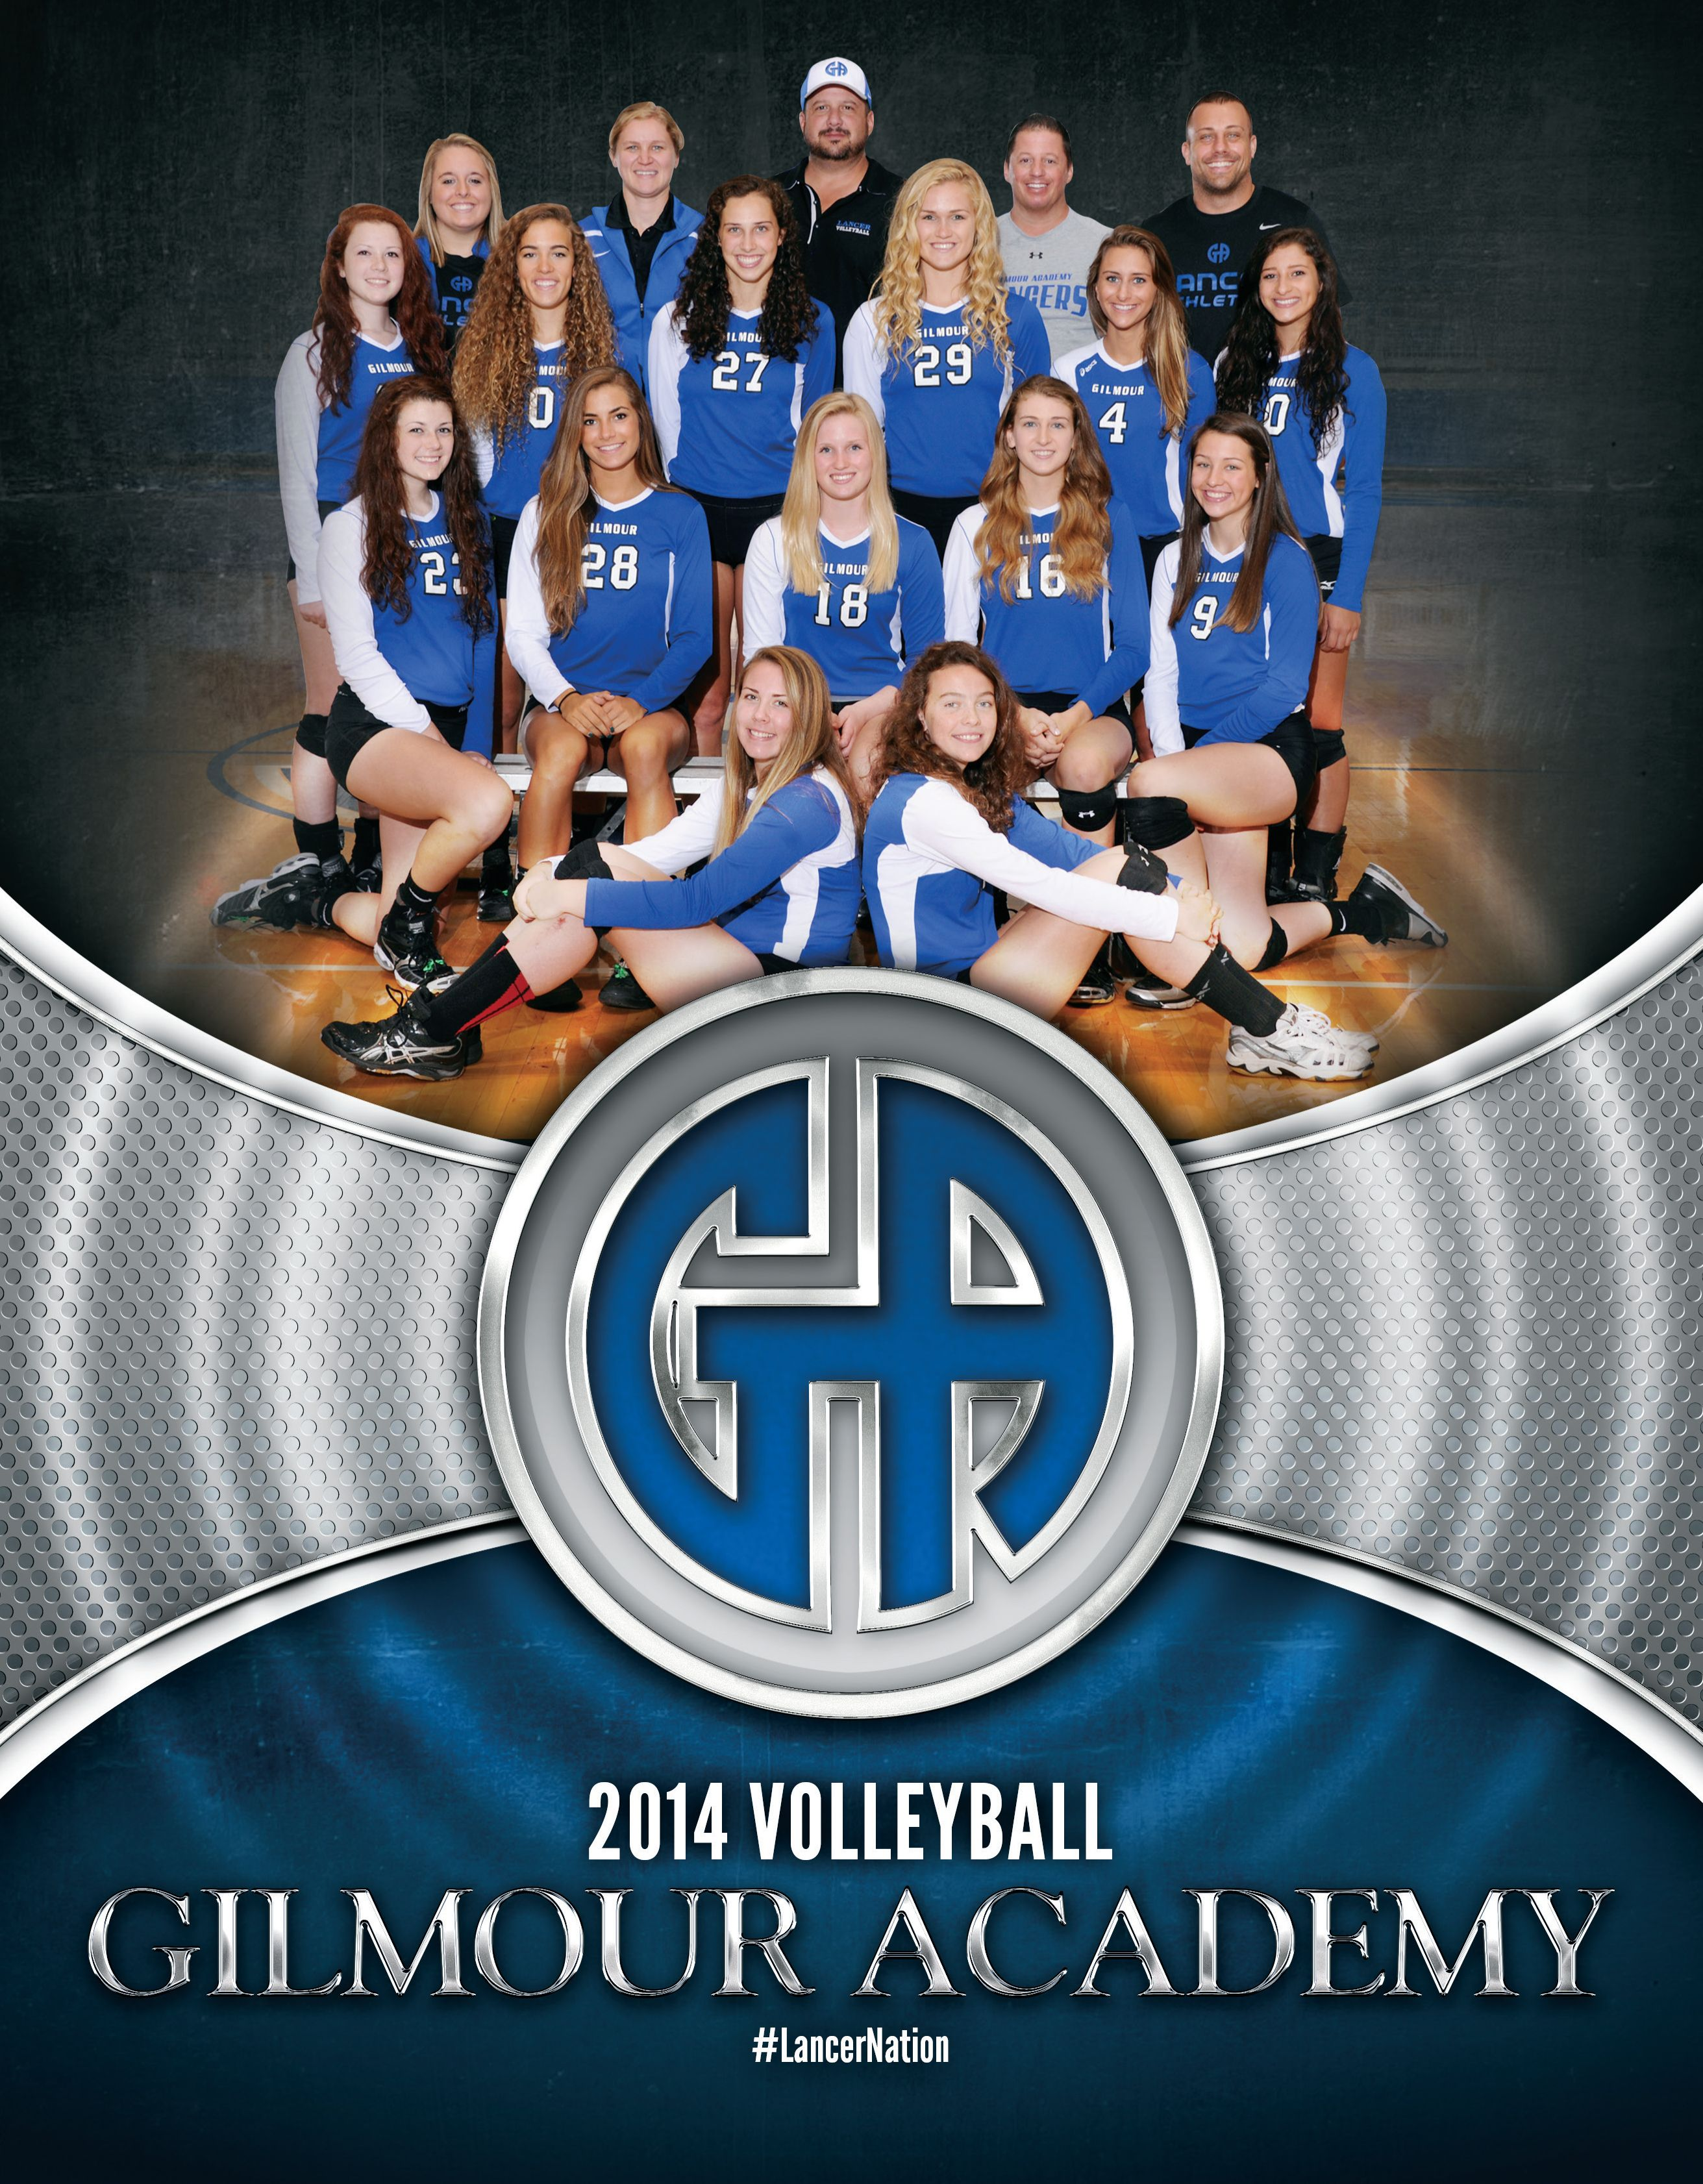 2014 Volleyball Media Guide Cover Captain America Fictional Characters Superhero